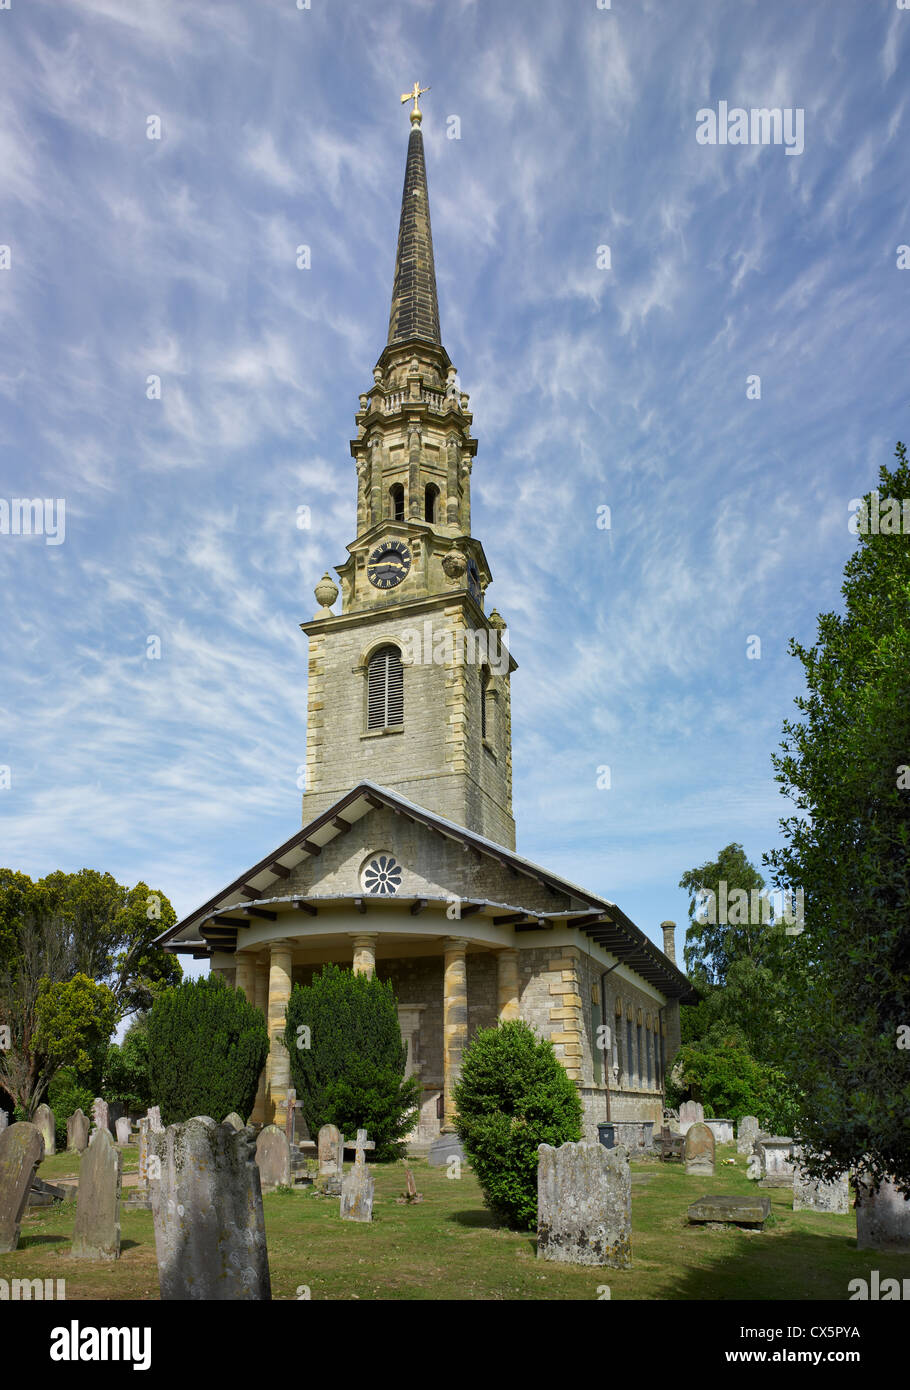 Mereworth, Kent. St Lawrence exterior - Stock Image